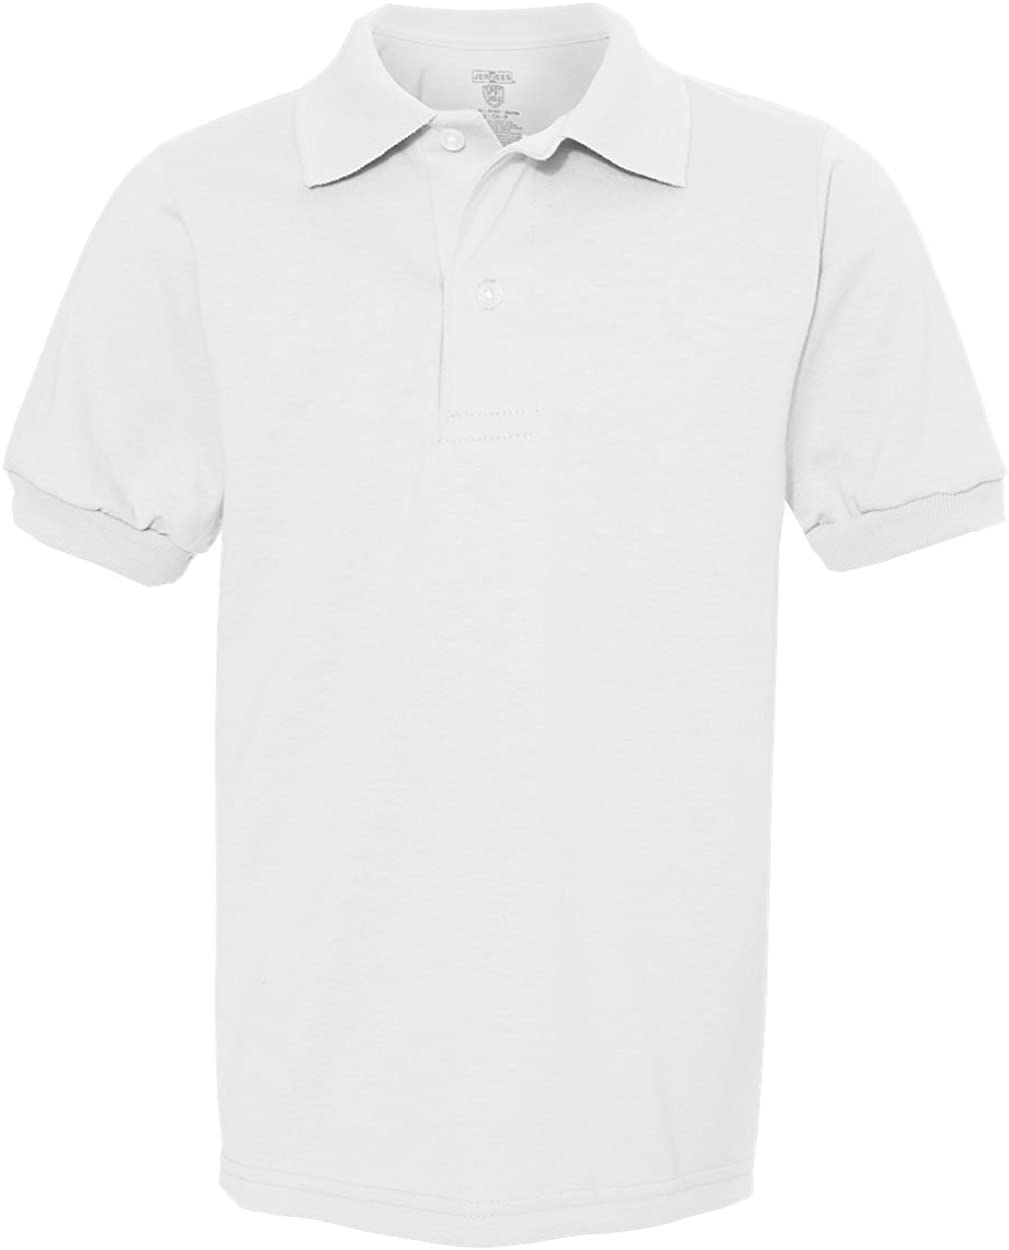 Jerzees Youth 5.6 oz., 50/50 Jersey Polo with SpotShield (437Y) WHITE